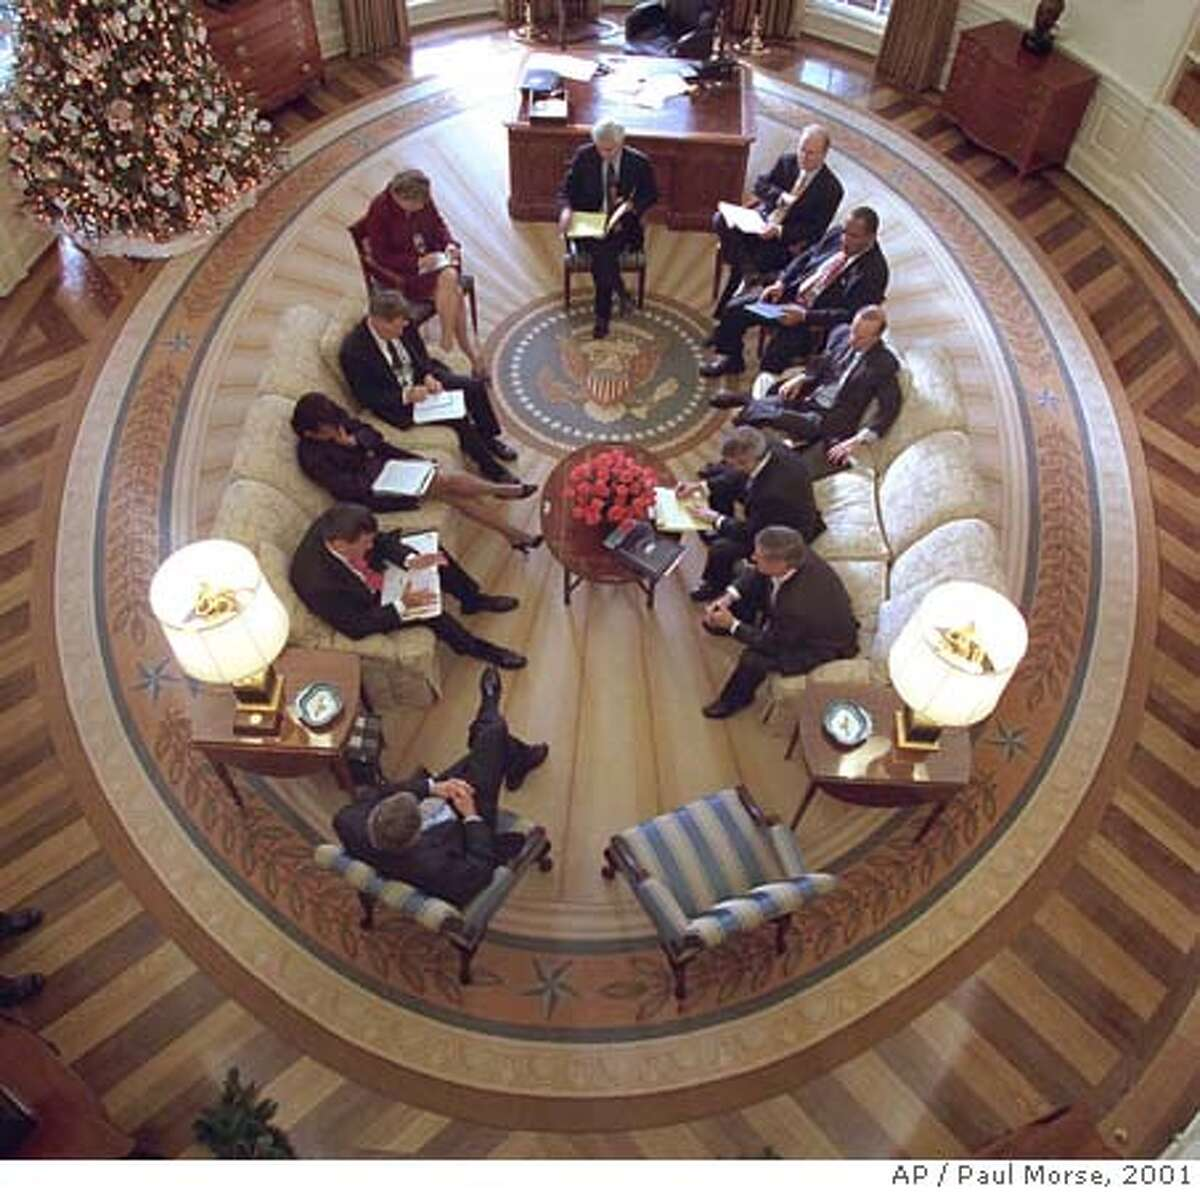 President Bush hosts a meeting in the Oval Office decorated with the new presidential rug in the White House in Washington, Thursday, Dec. 20, 2001. The rug, which is unique to the Bush administration, arrived earlier in the week and was unveiled to the media Friday Dec. 21, 2001. The participants included clockwise from the bottom, President Bush, Tom Ridge, Condoleezza Rice, Admiral Steve Abbot, Karen Hughes, Dean McGrath, Karl Rove, Albert Hawkins, Mitch Daniels, Josh Bolton, and Andy Card. WhiteHouse Photographer Paul Morse is at left. (AP Photo/White House, Paul Morse)